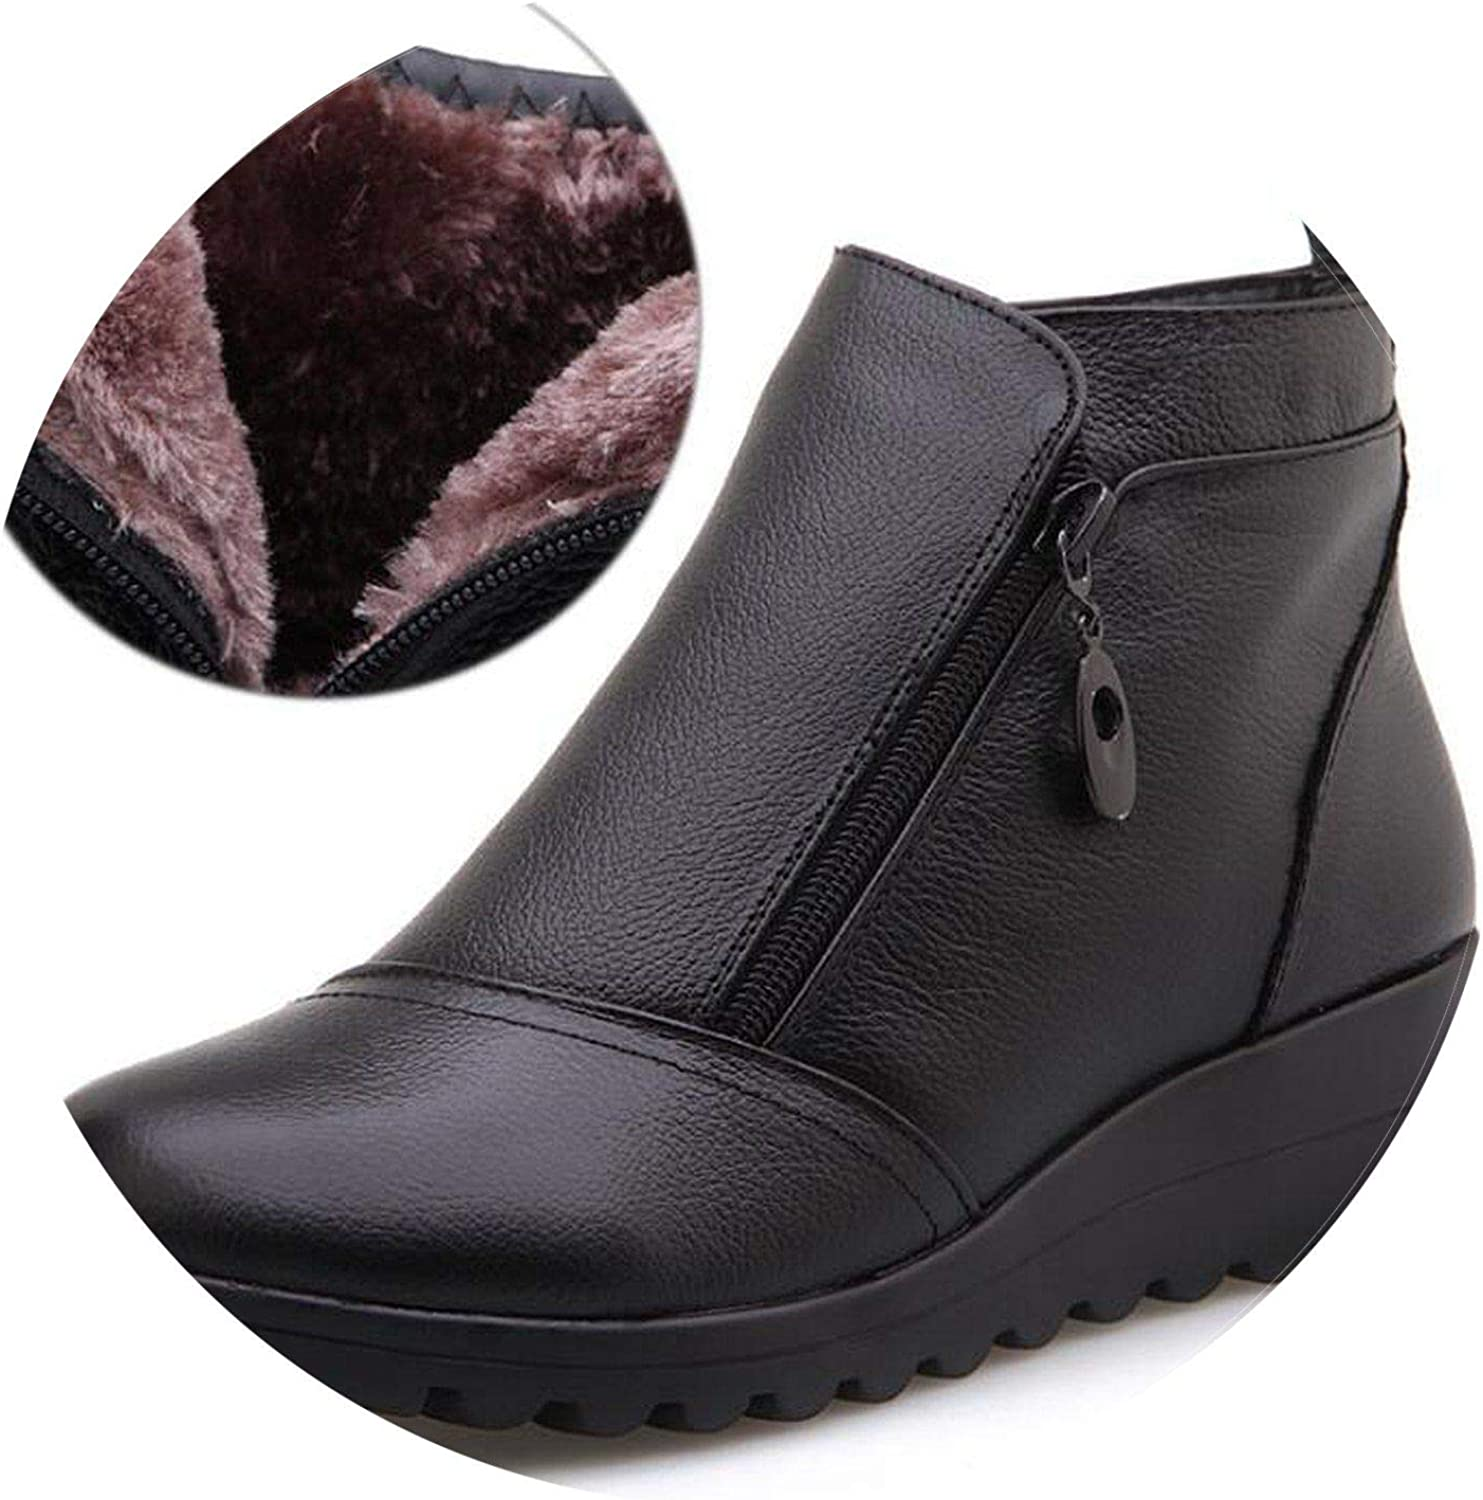 Summer-lavender Genuine Leather Snow Boots Women Comfortable Wedges Ankle Boots Round Toe Keep Warm Winter shoes